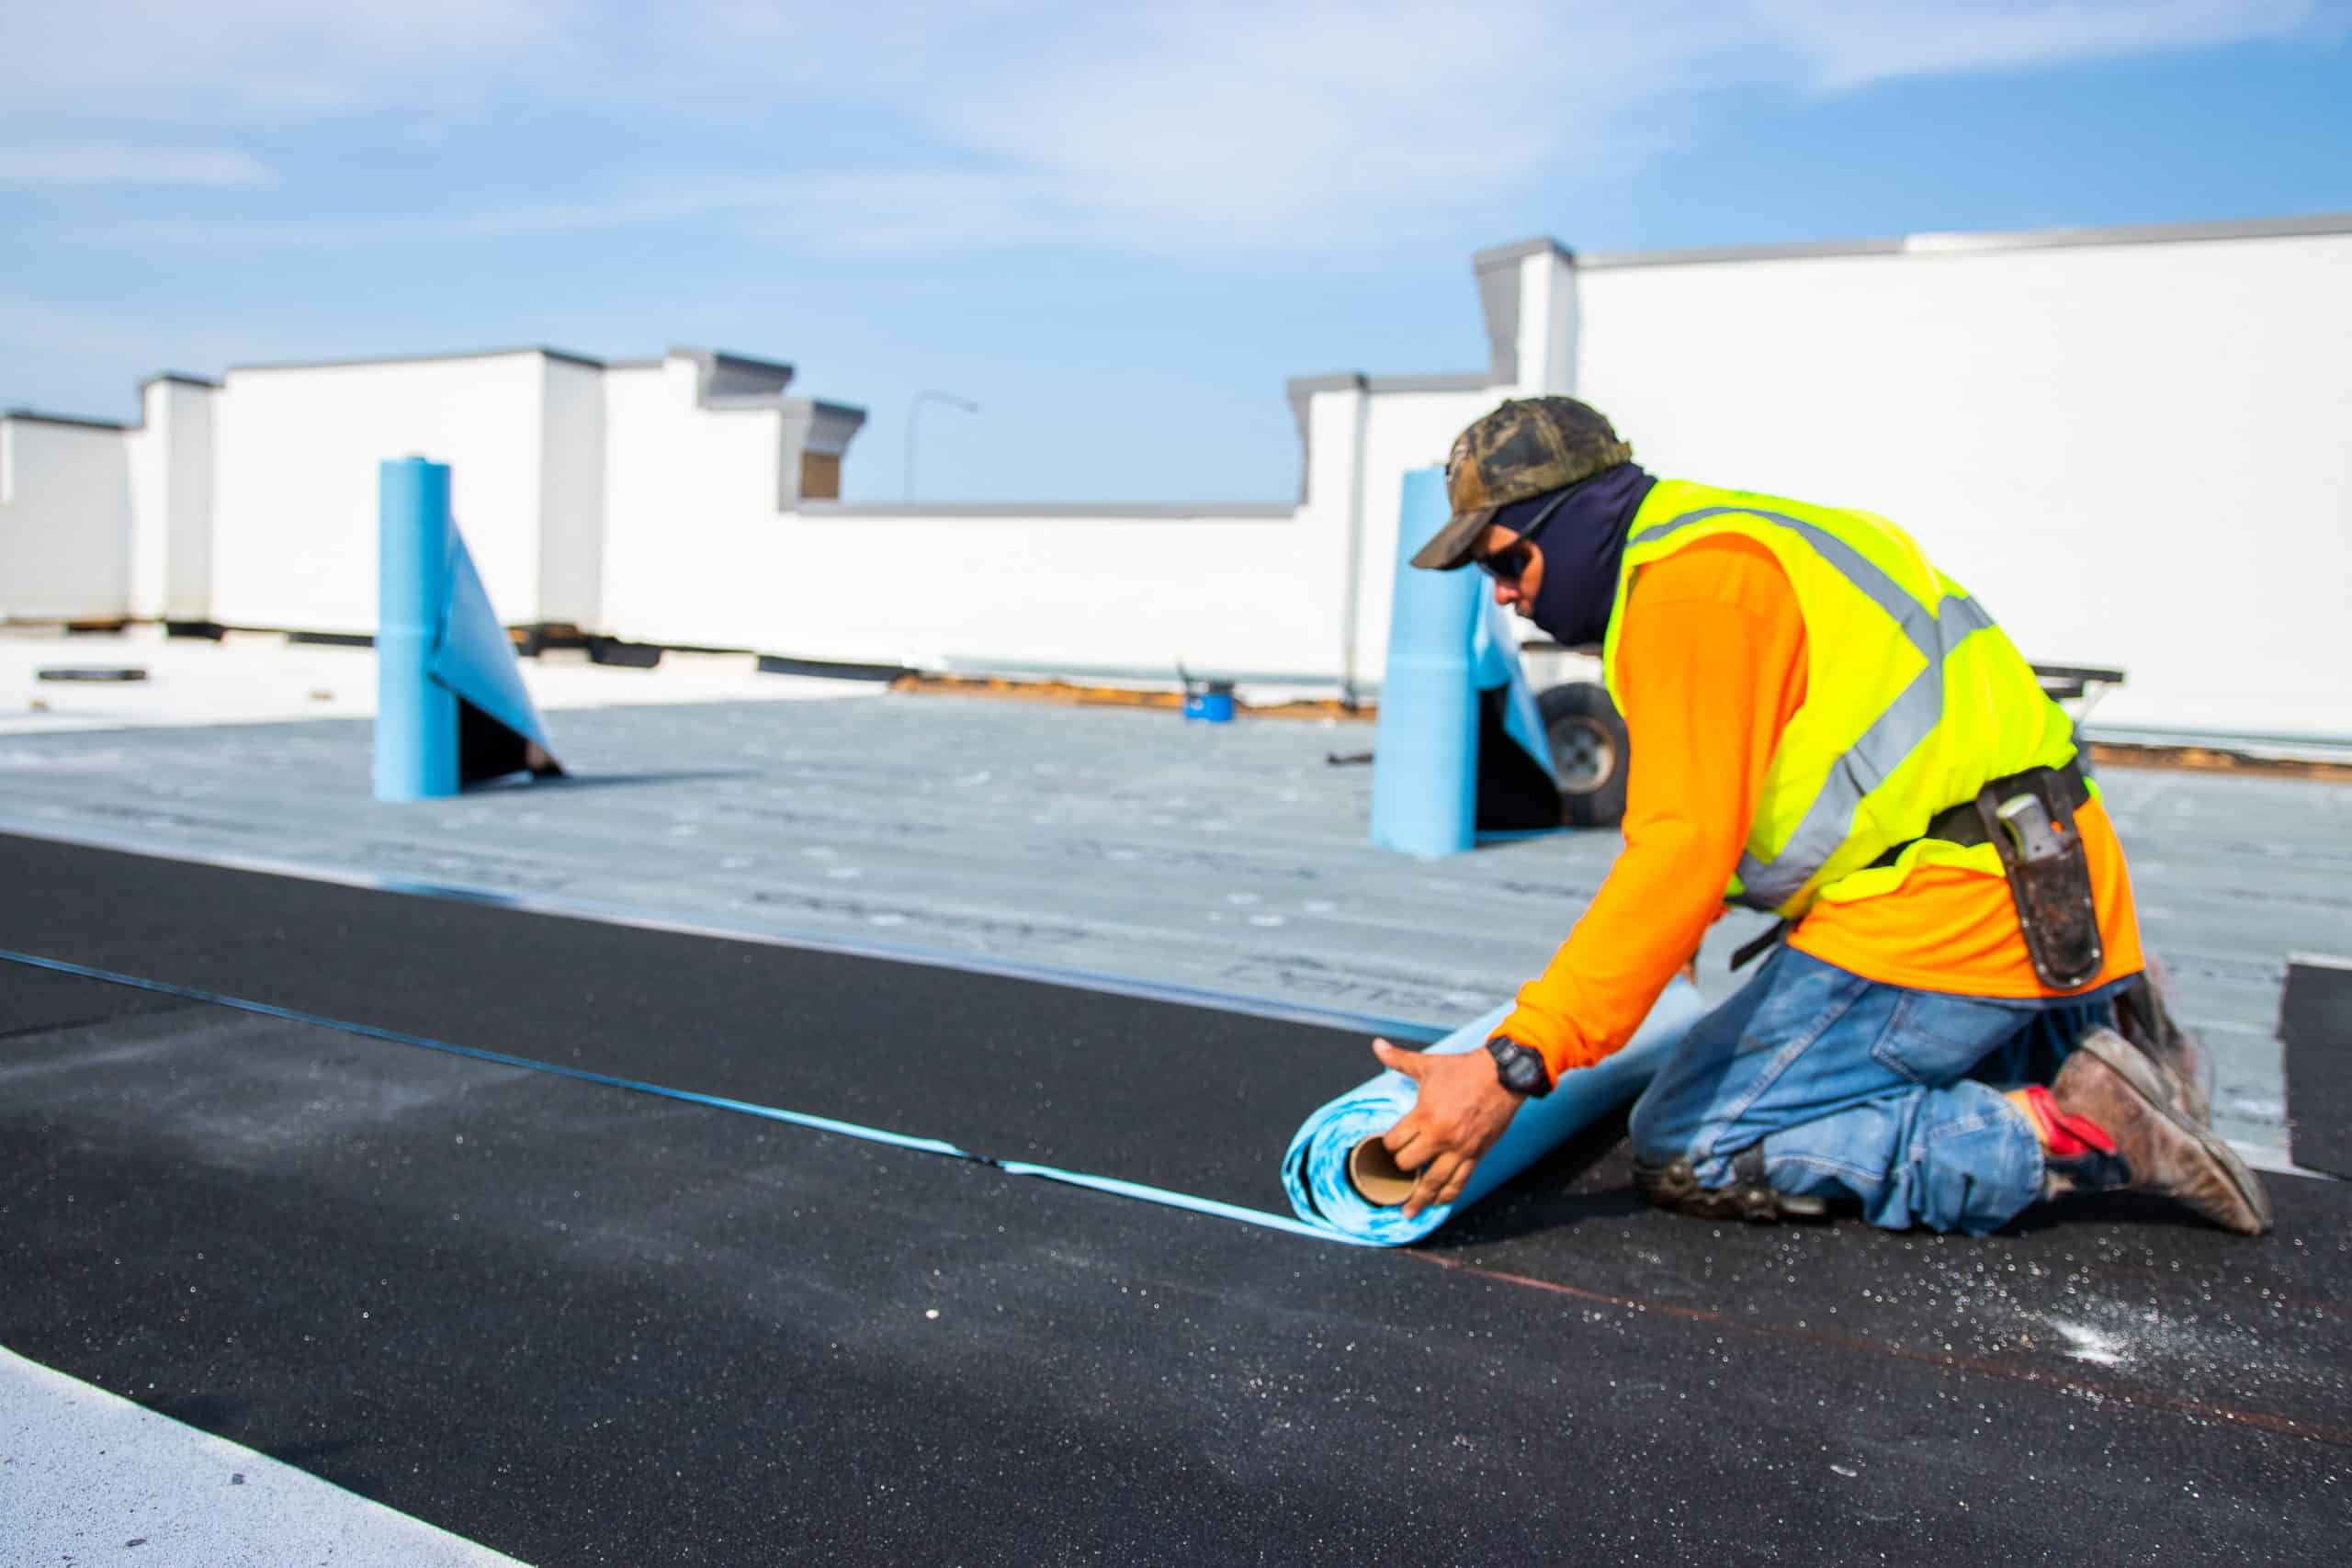 Certainteed Flintlastic SA roofing being unrolled and installed